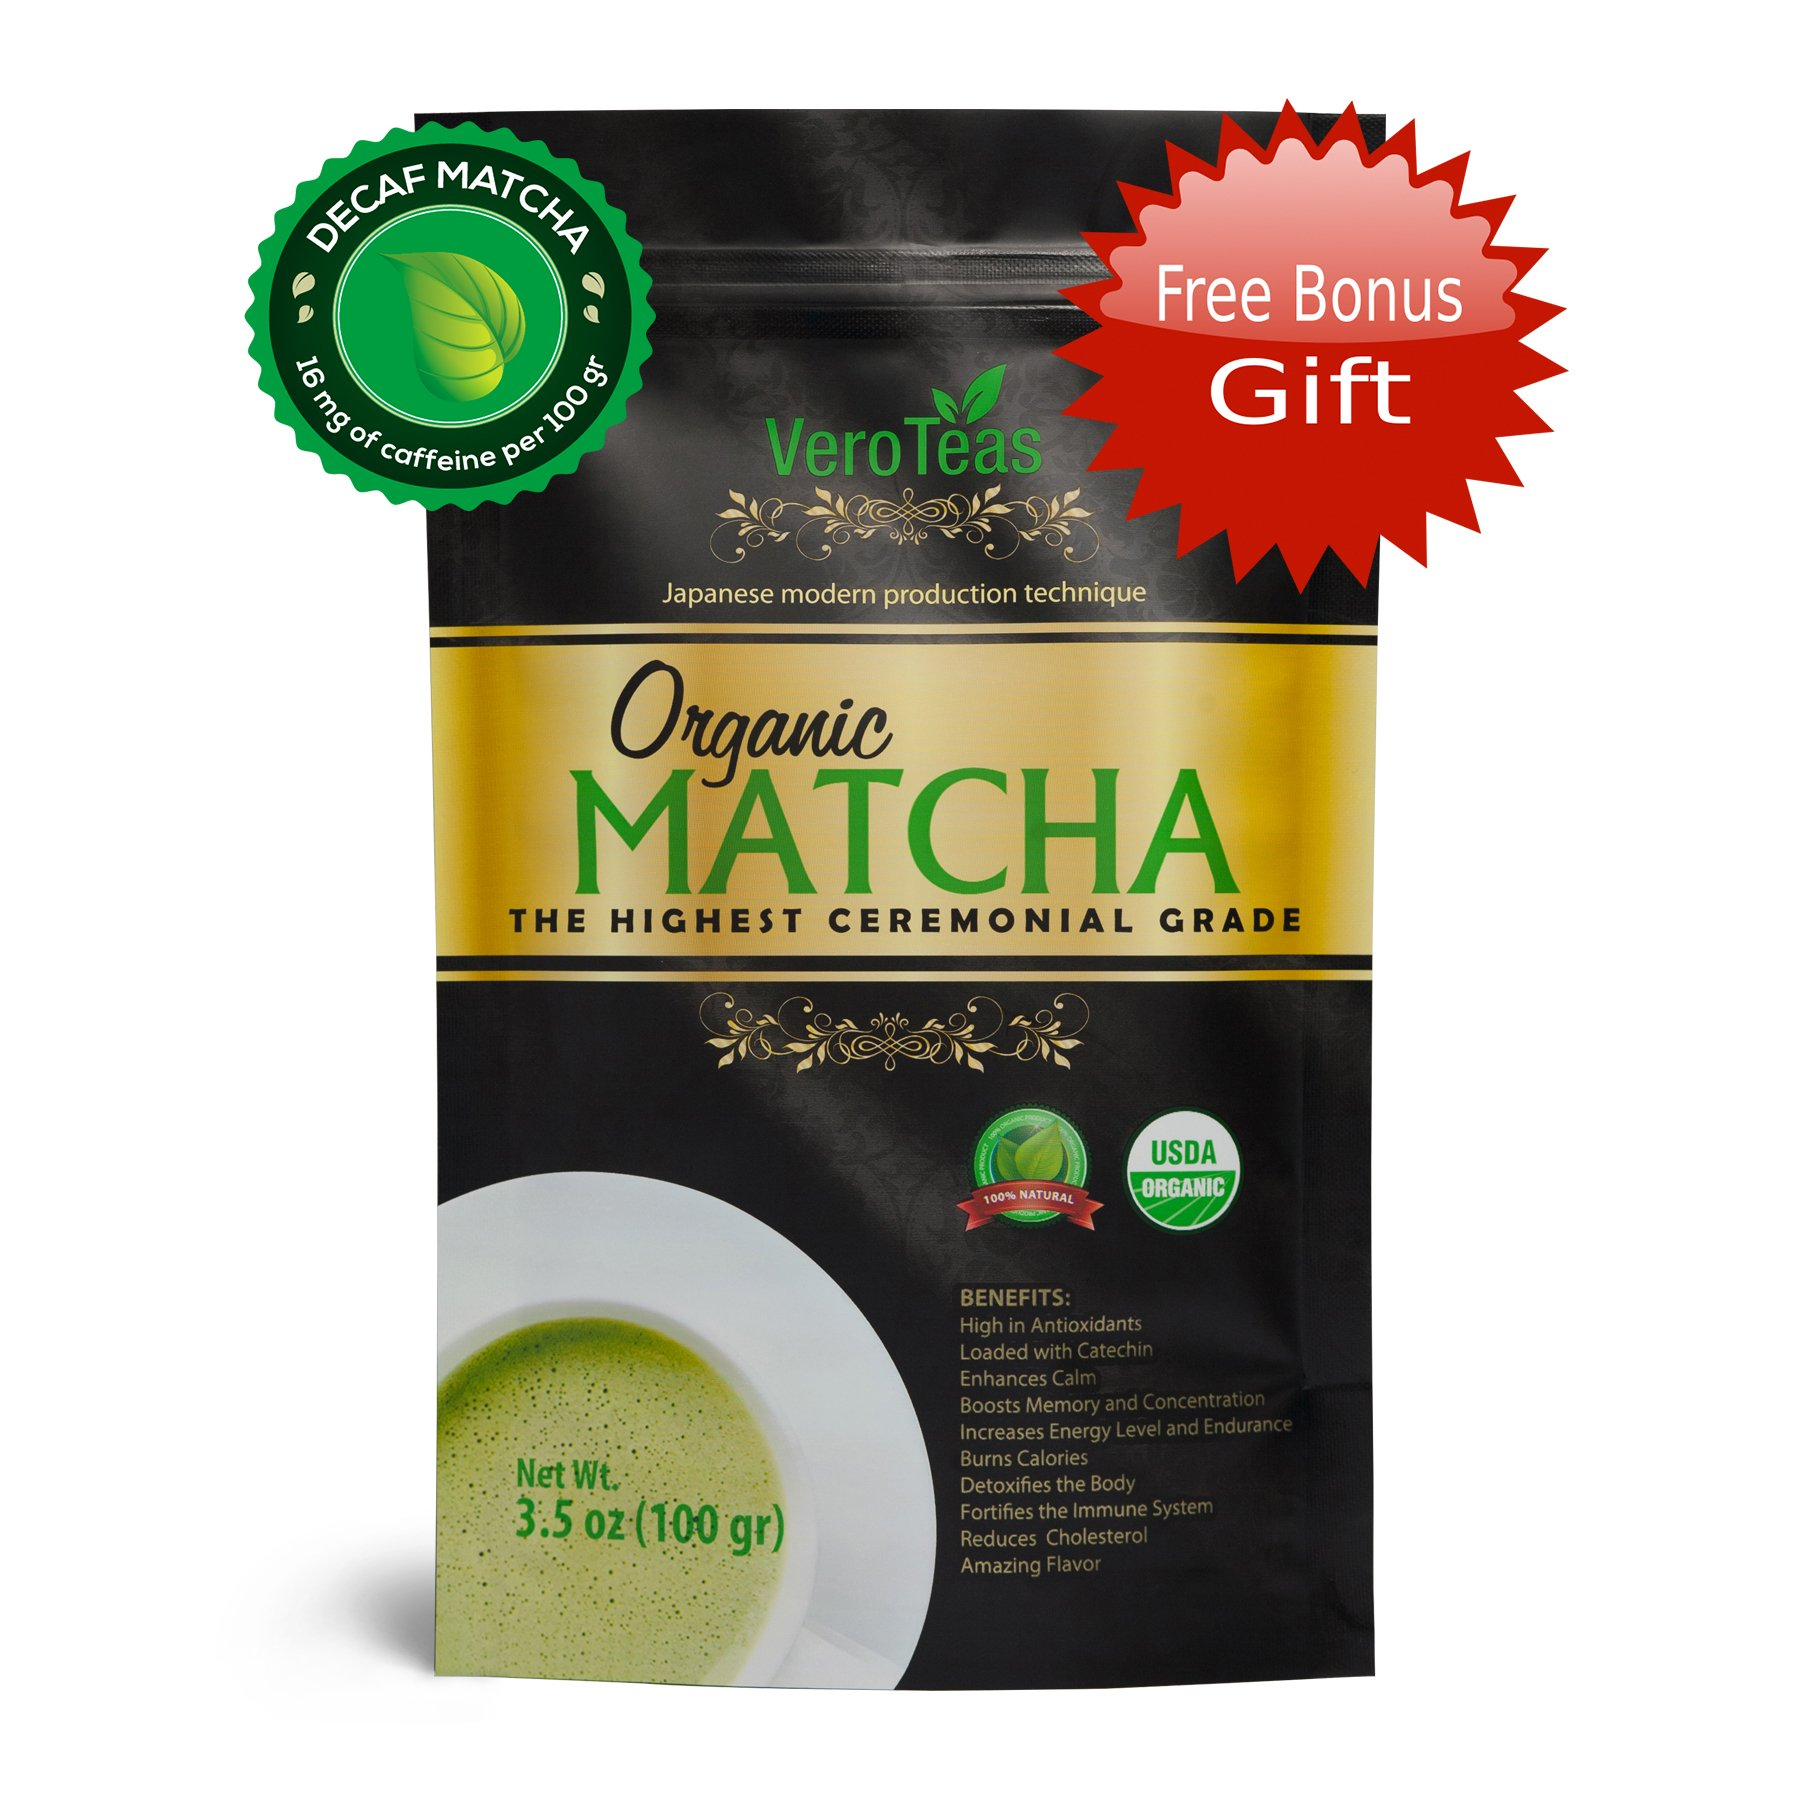 Matcha Green Tea Powder + 2 FREE GIFTS – Organic, Decaf (Low Caffeine), Ceremonial, USDA, Weight Loss – Perfect Culinary Powder – Lattes, Baking – From Japan – For Sipping as Hot & Iced Tea – 3.5 oz